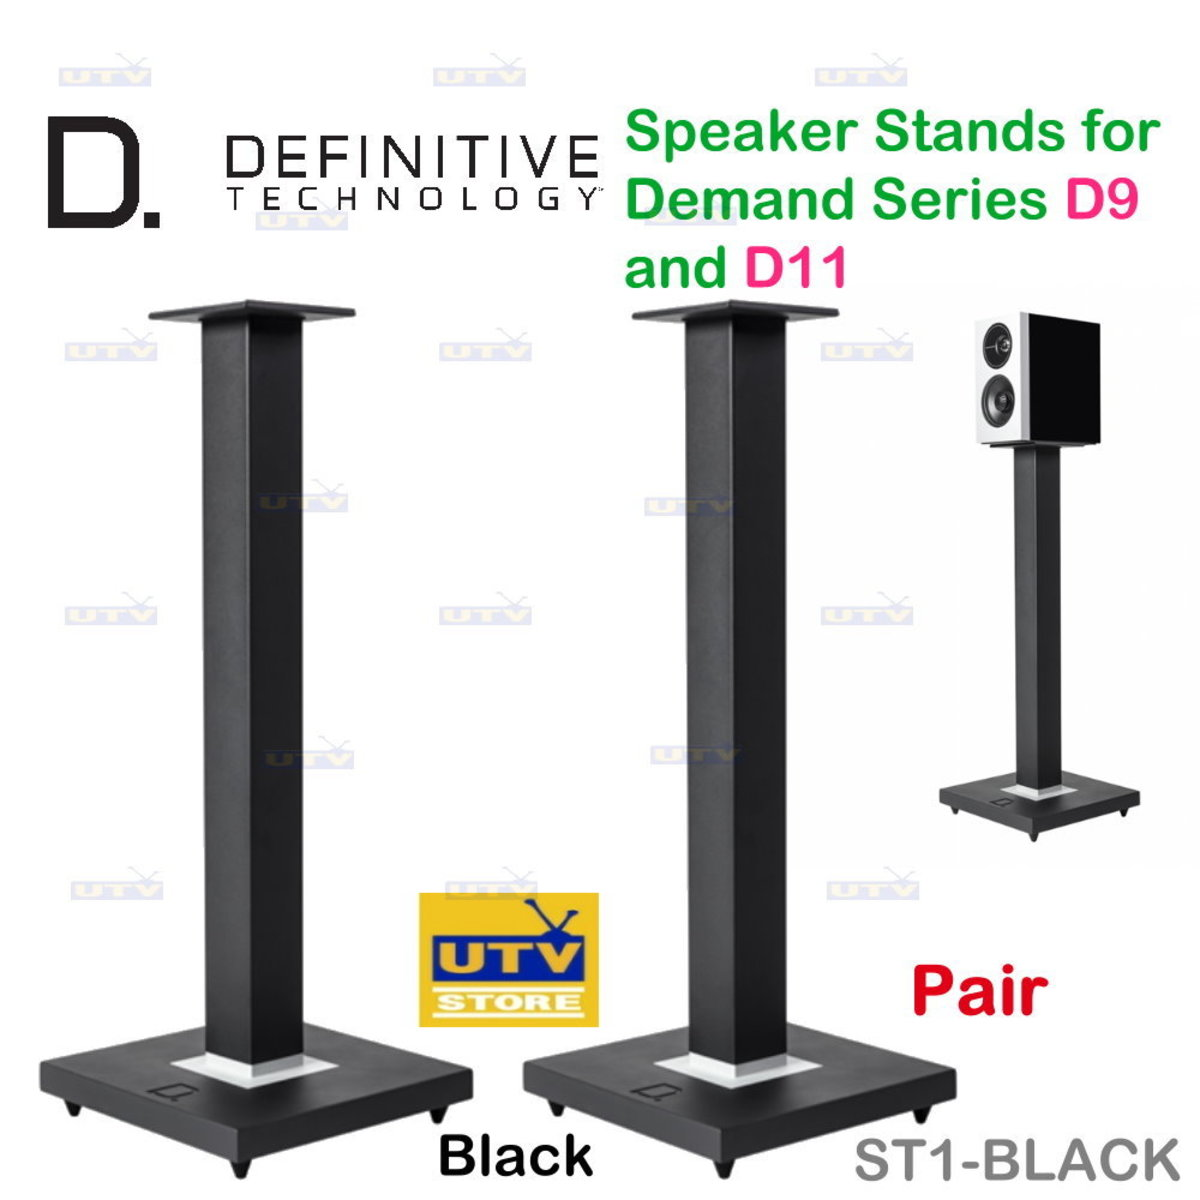 ST1 Definitive Speaker Stands for Demand Series D9 and D11